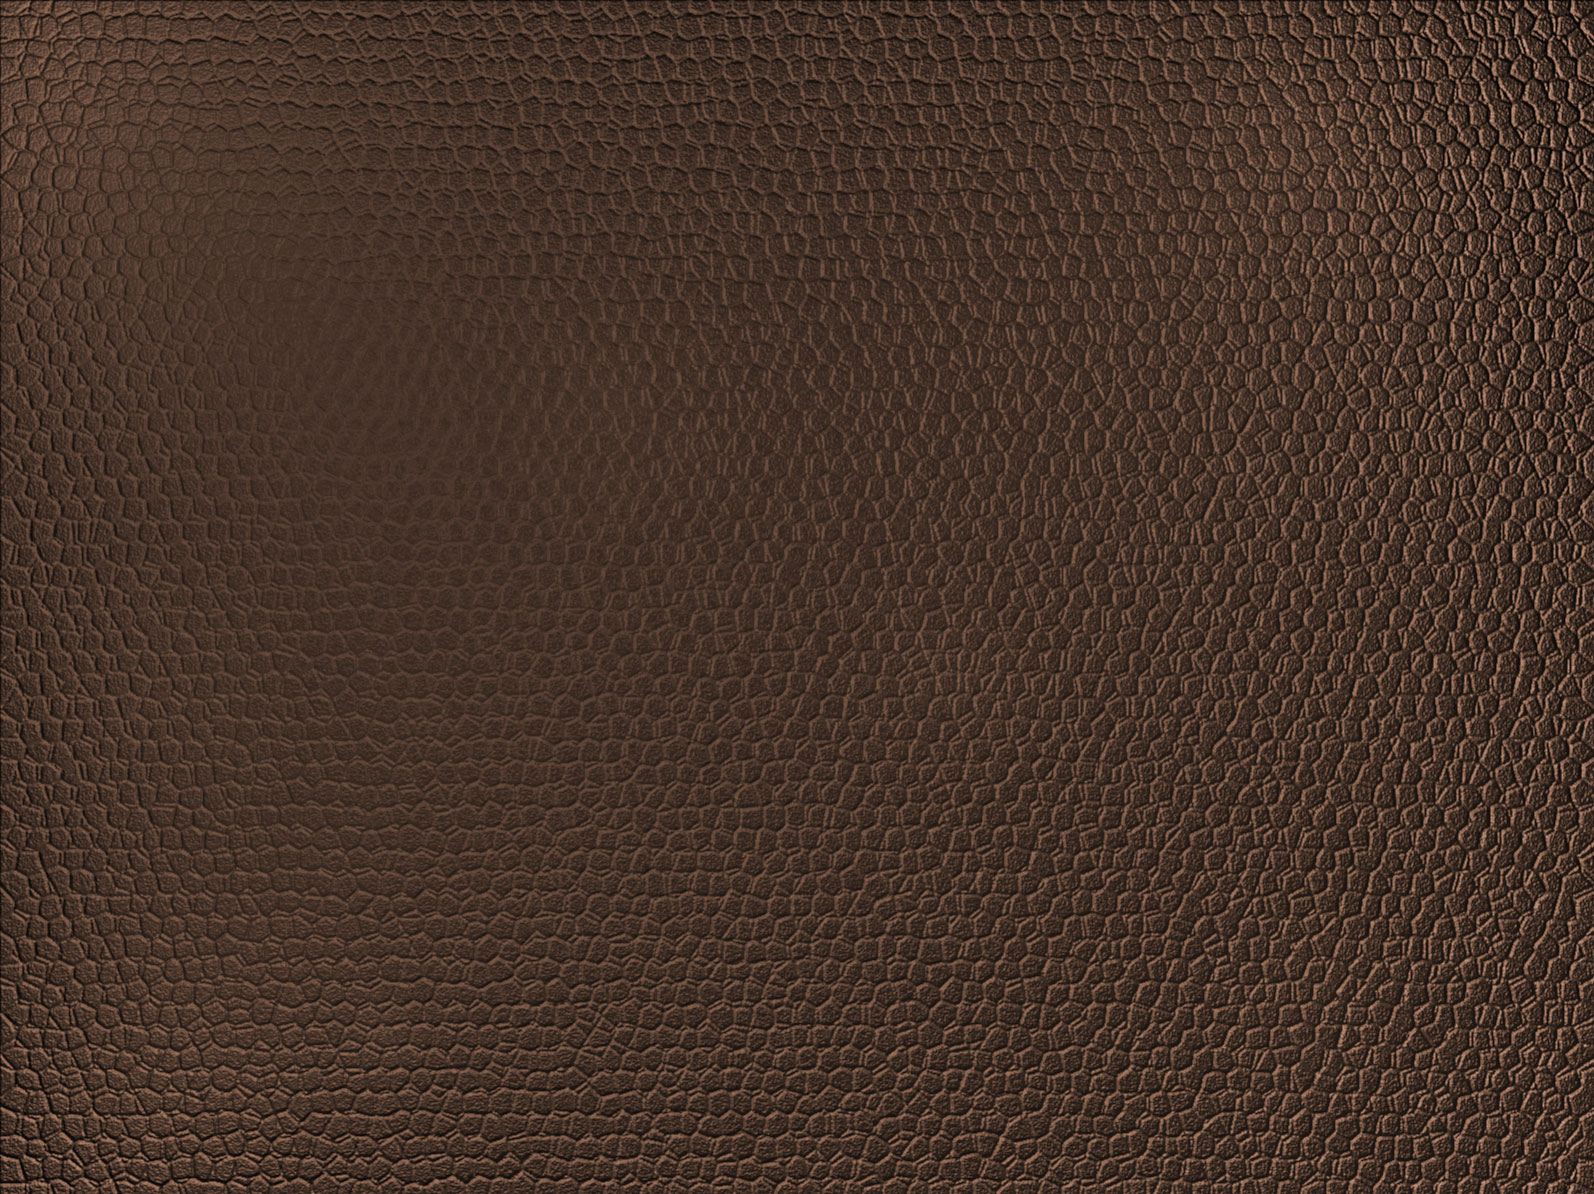 Leather cushion texture - Leather Medieval Archives